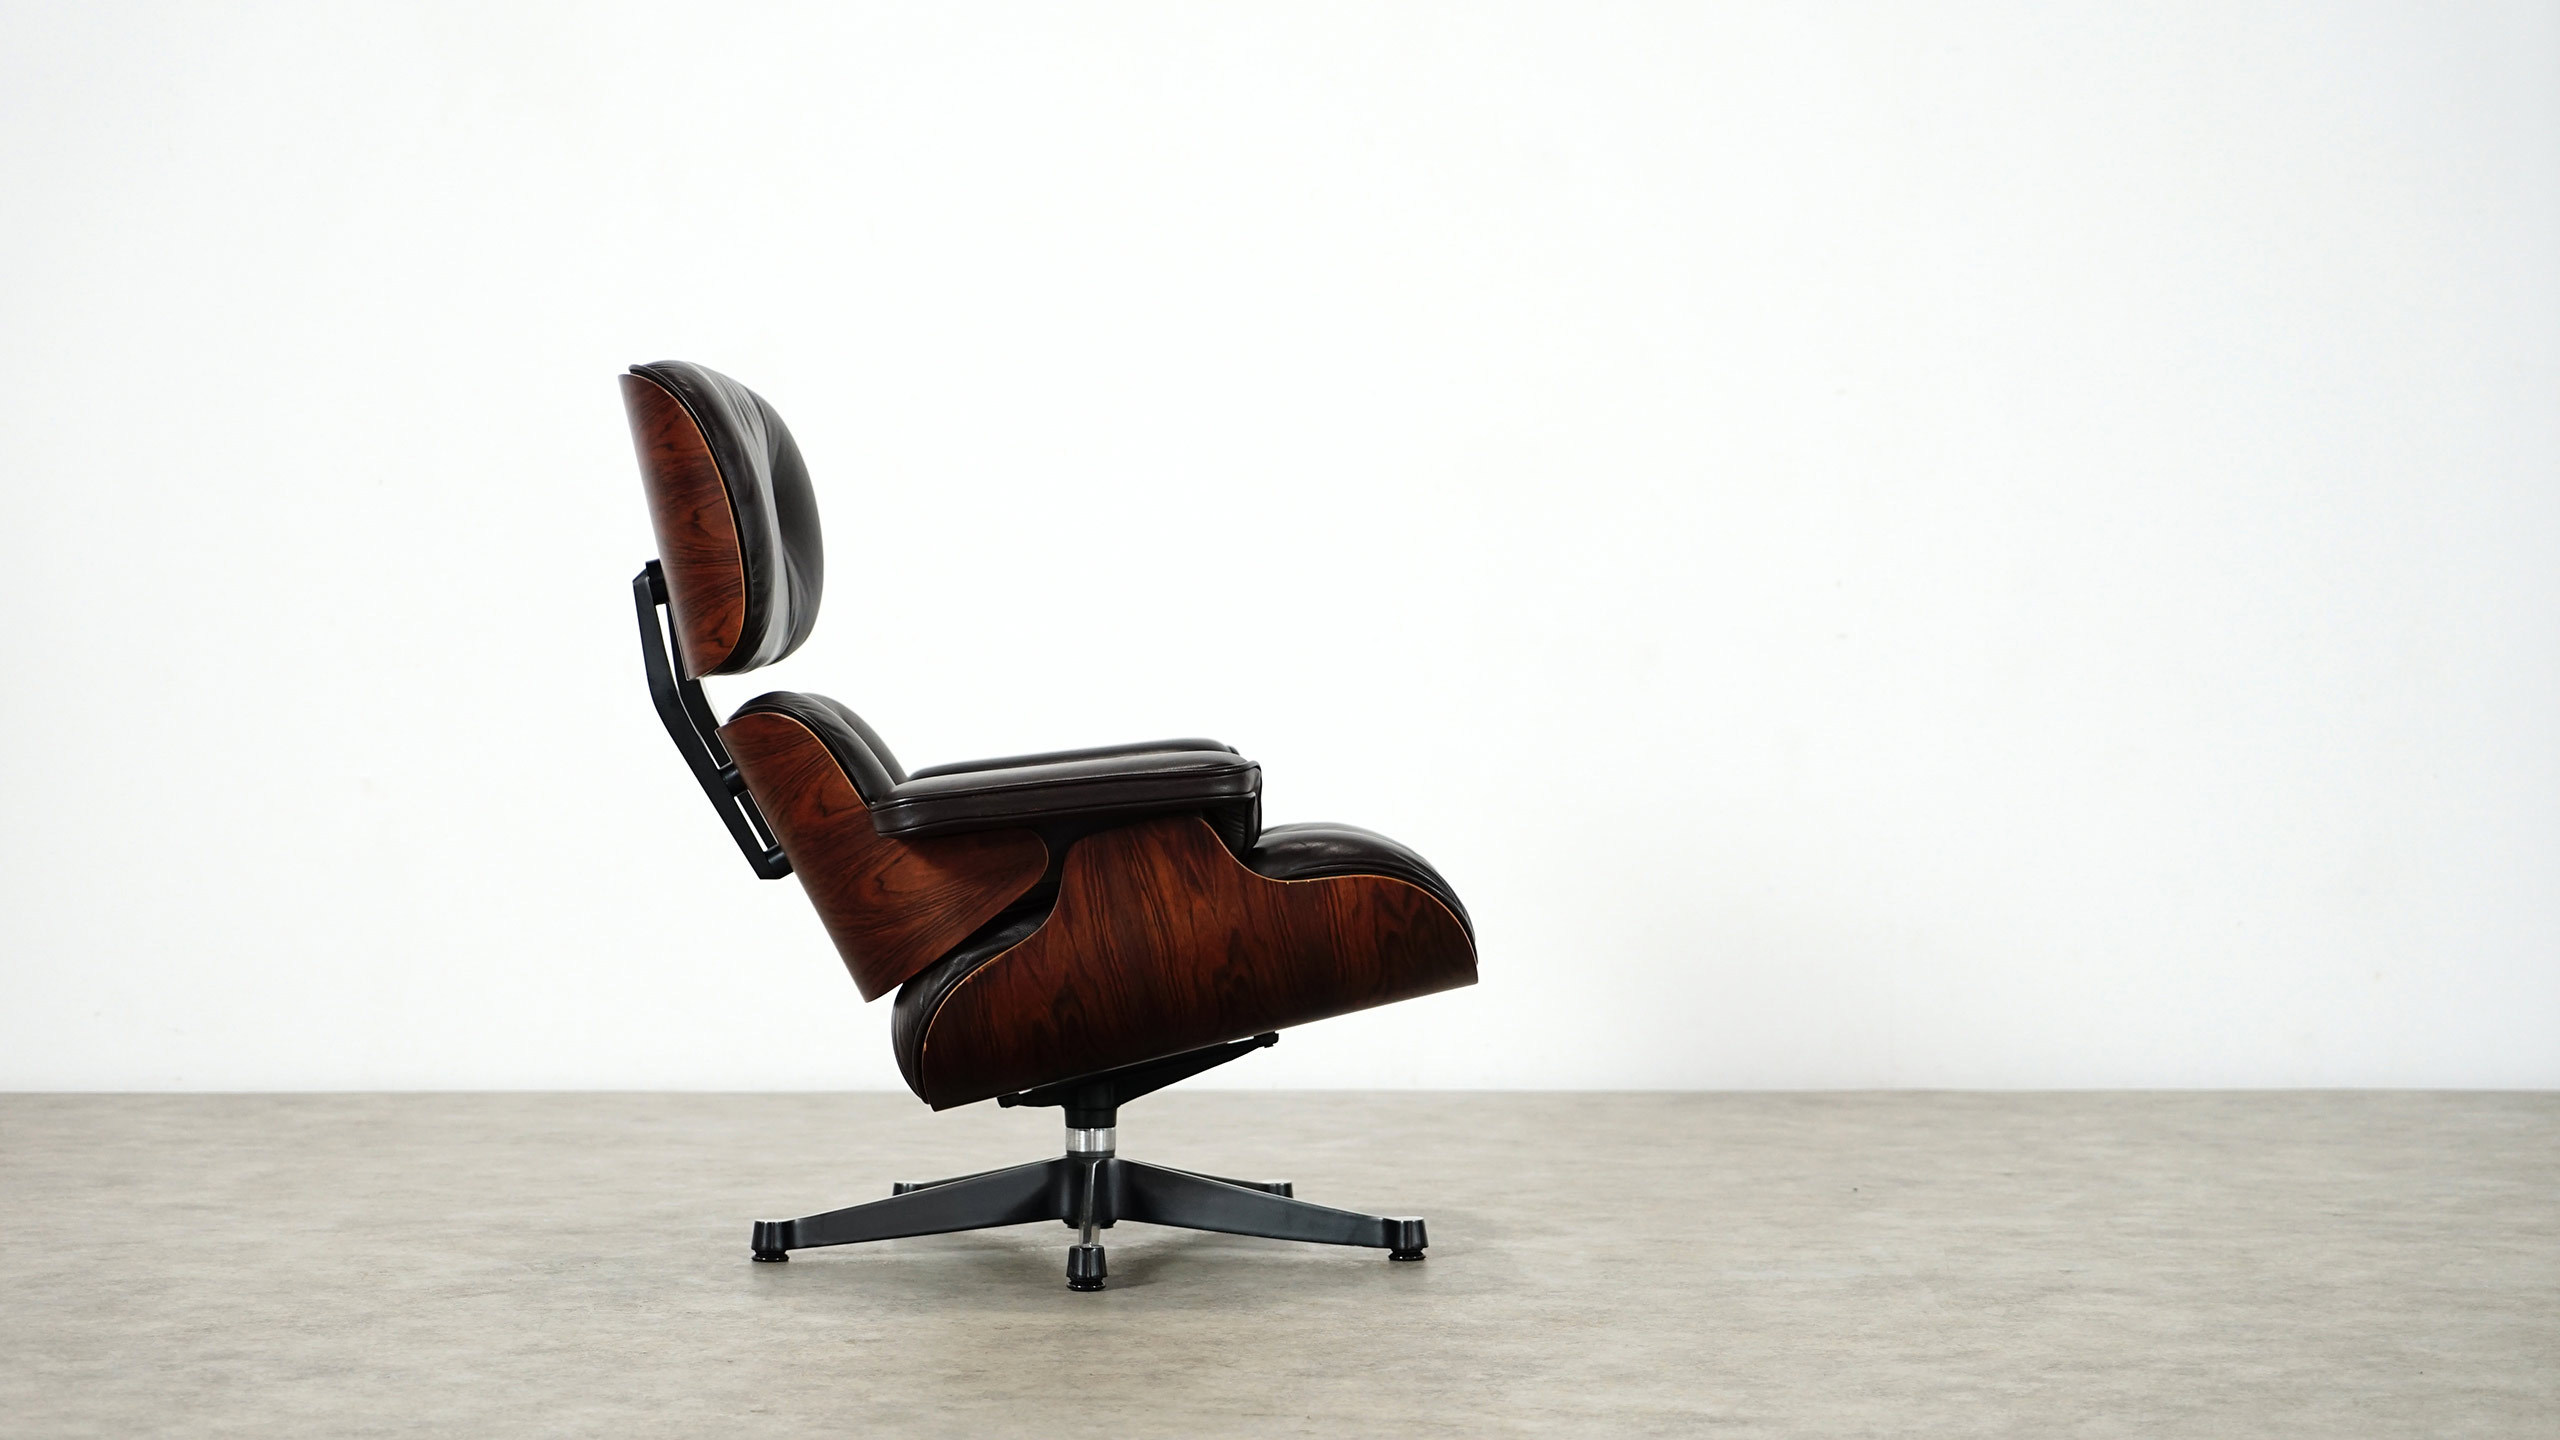 charles eames lounge chair by herman miller. Black Bedroom Furniture Sets. Home Design Ideas